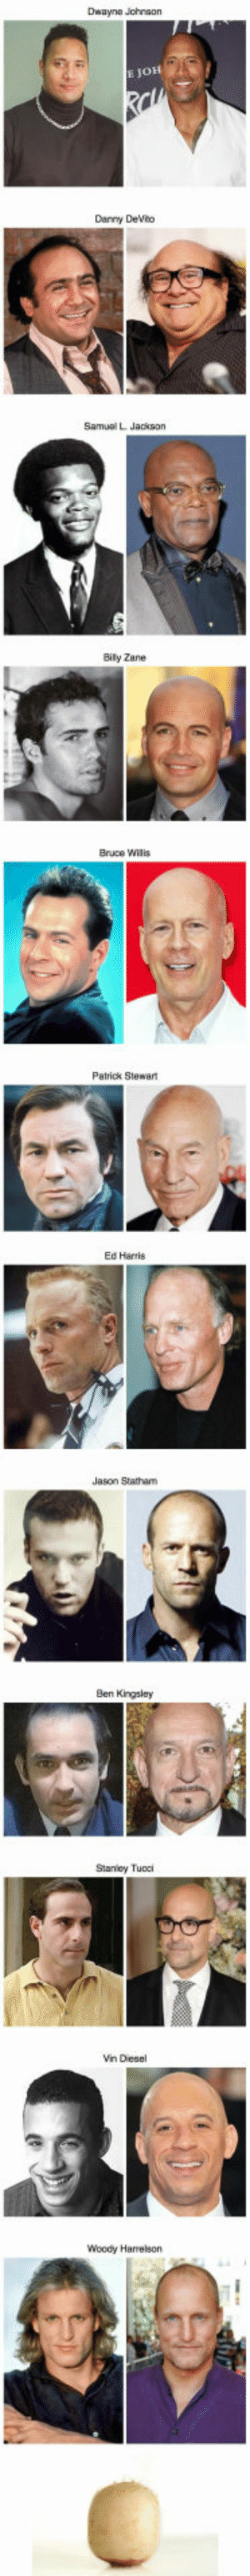 How These 12 Famous Actors Looked Before Going Bald: Dwayna Johnson  E JOH  Darny DeVno  Samual L Jackson  Bily Zane  Patrick Stlewart  Ed Harris  Jason Statham  Ben Kingsley  Stanley Tuoci  n Desel  Woody Harrelson How These 12 Famous Actors Looked Before Going Bald